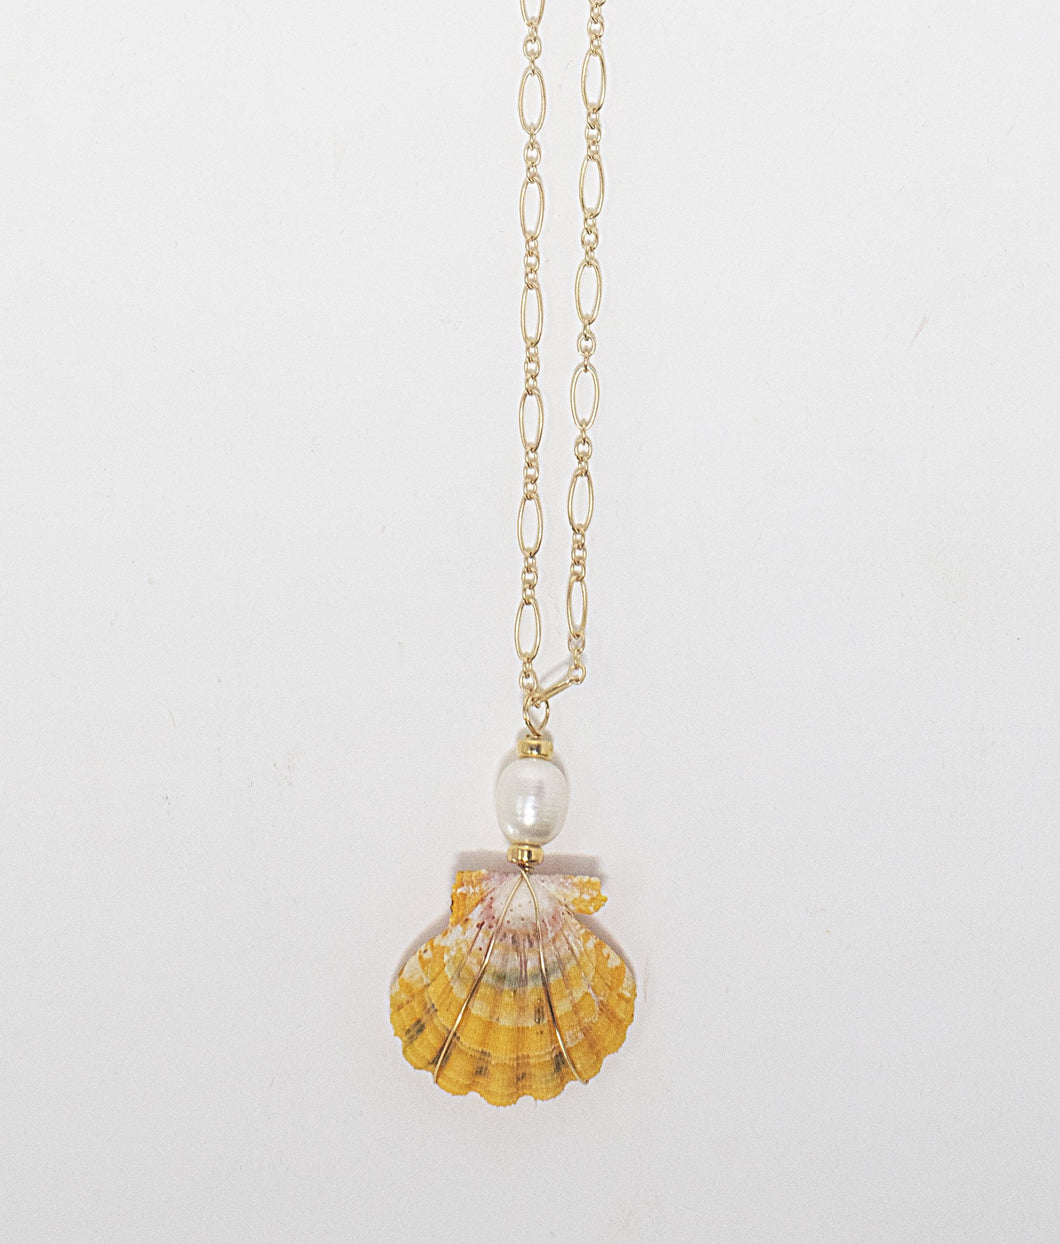 Hawaiian sunrise shell wire-wrapped with freshwater pearl bead hanging from 14 karat gold fill chain. Handmade in Maui, Hawaii